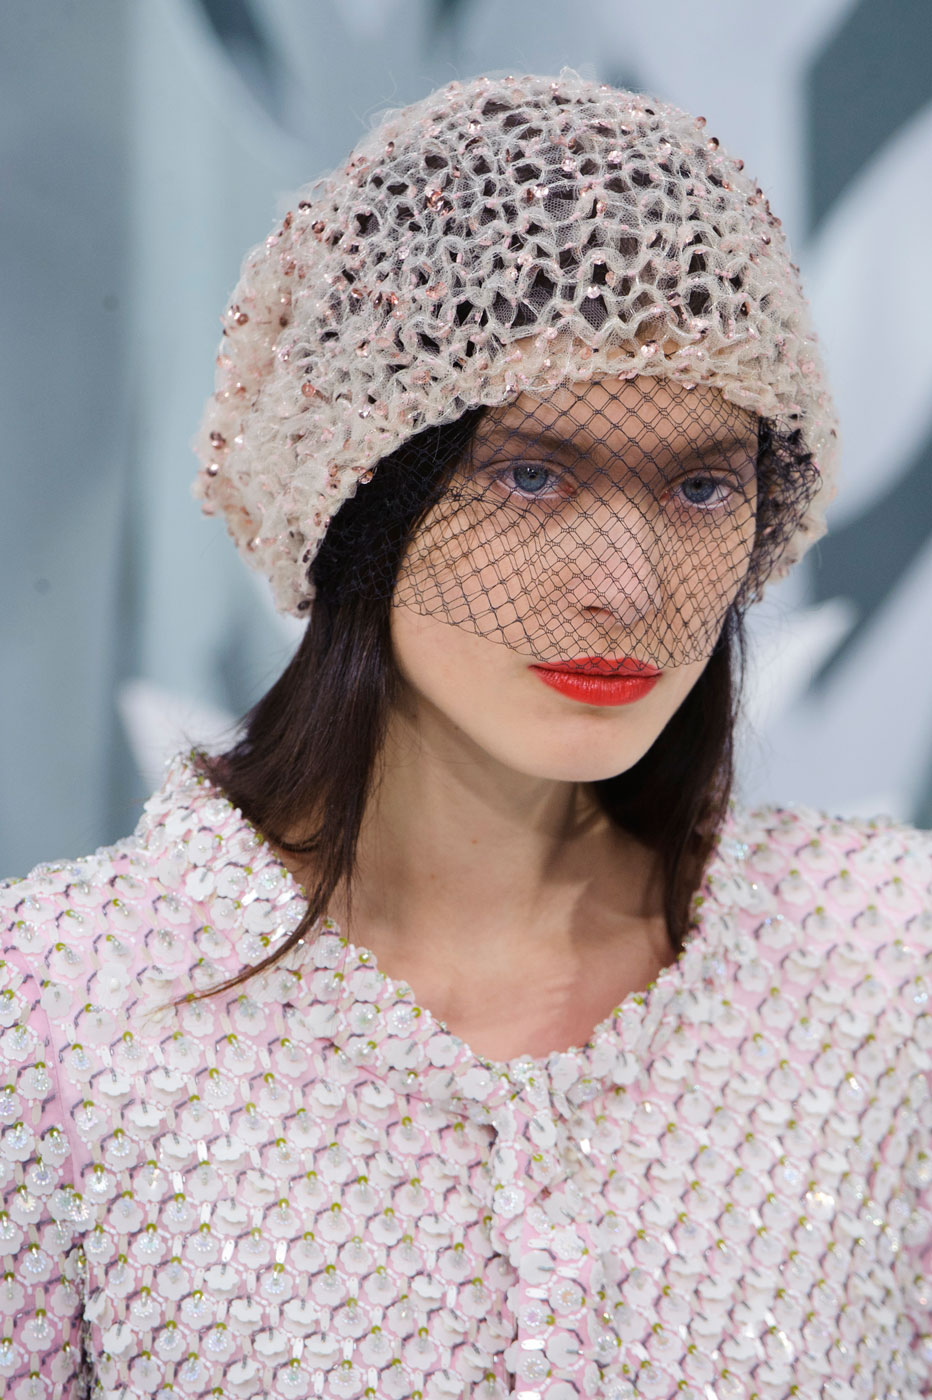 Chanel-fashion-runway-show-close-ups-haute-couture-paris-spring-summer-2015-the-impression-099